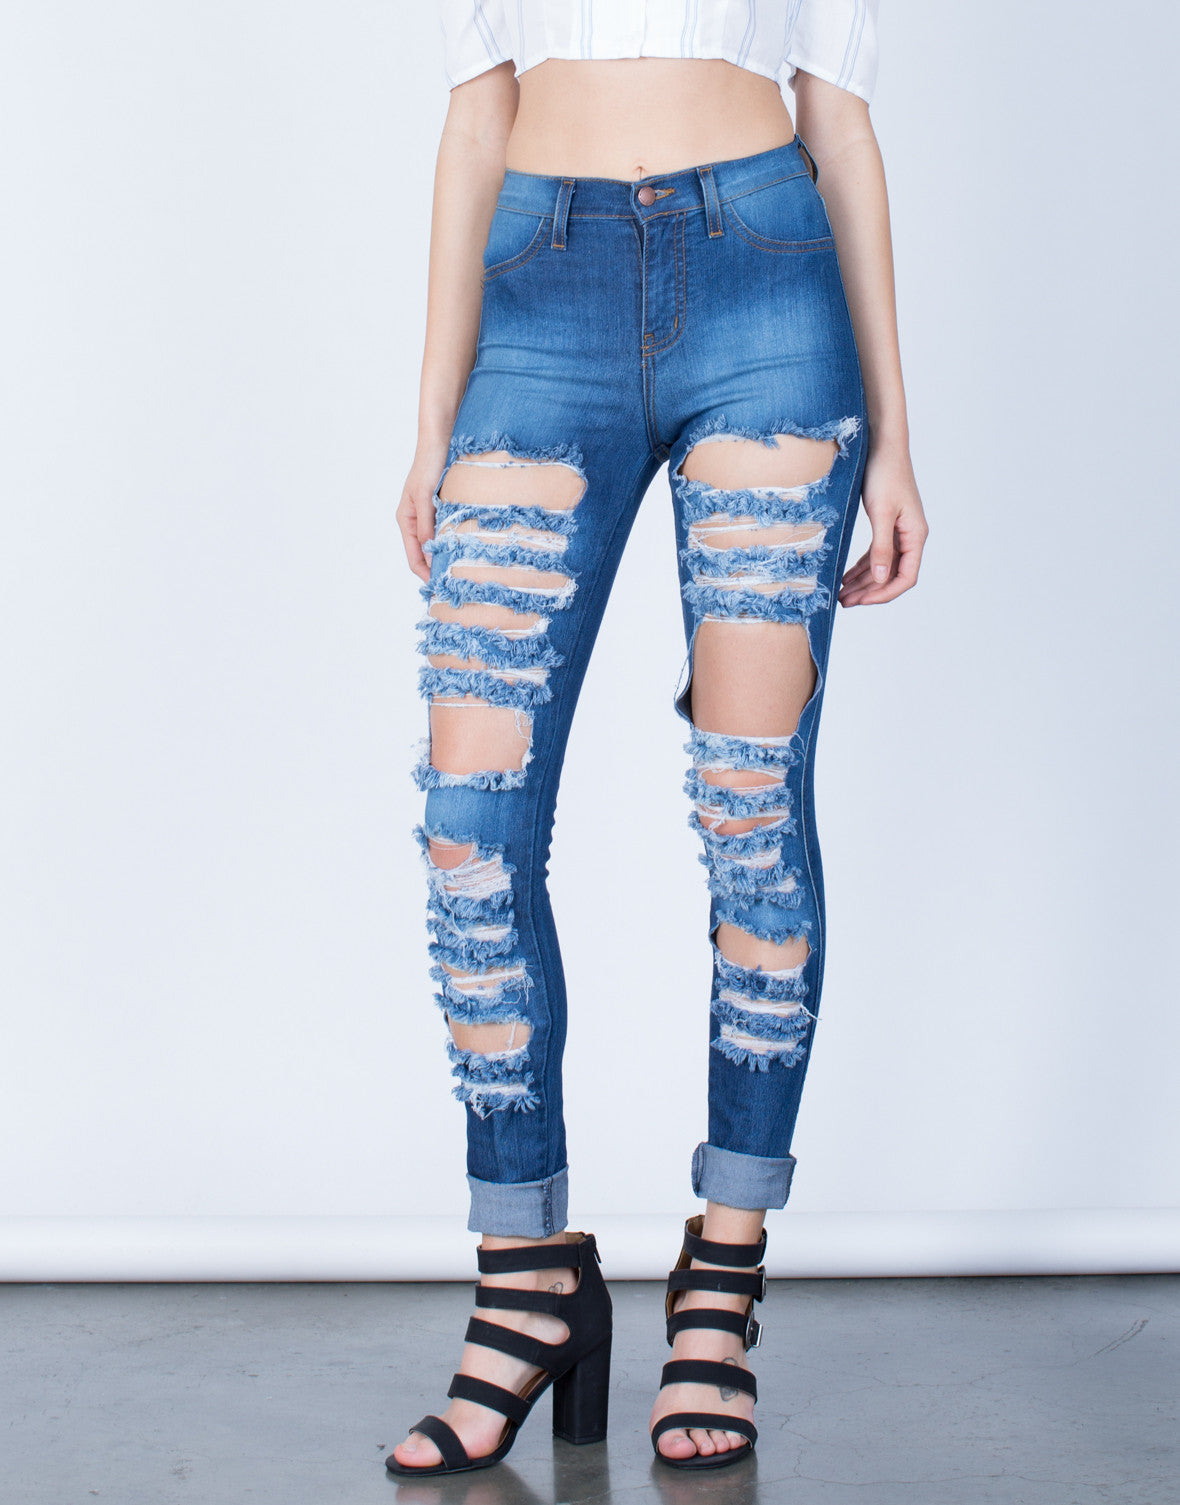 Front View of Front Shredded High Waisted Jeans